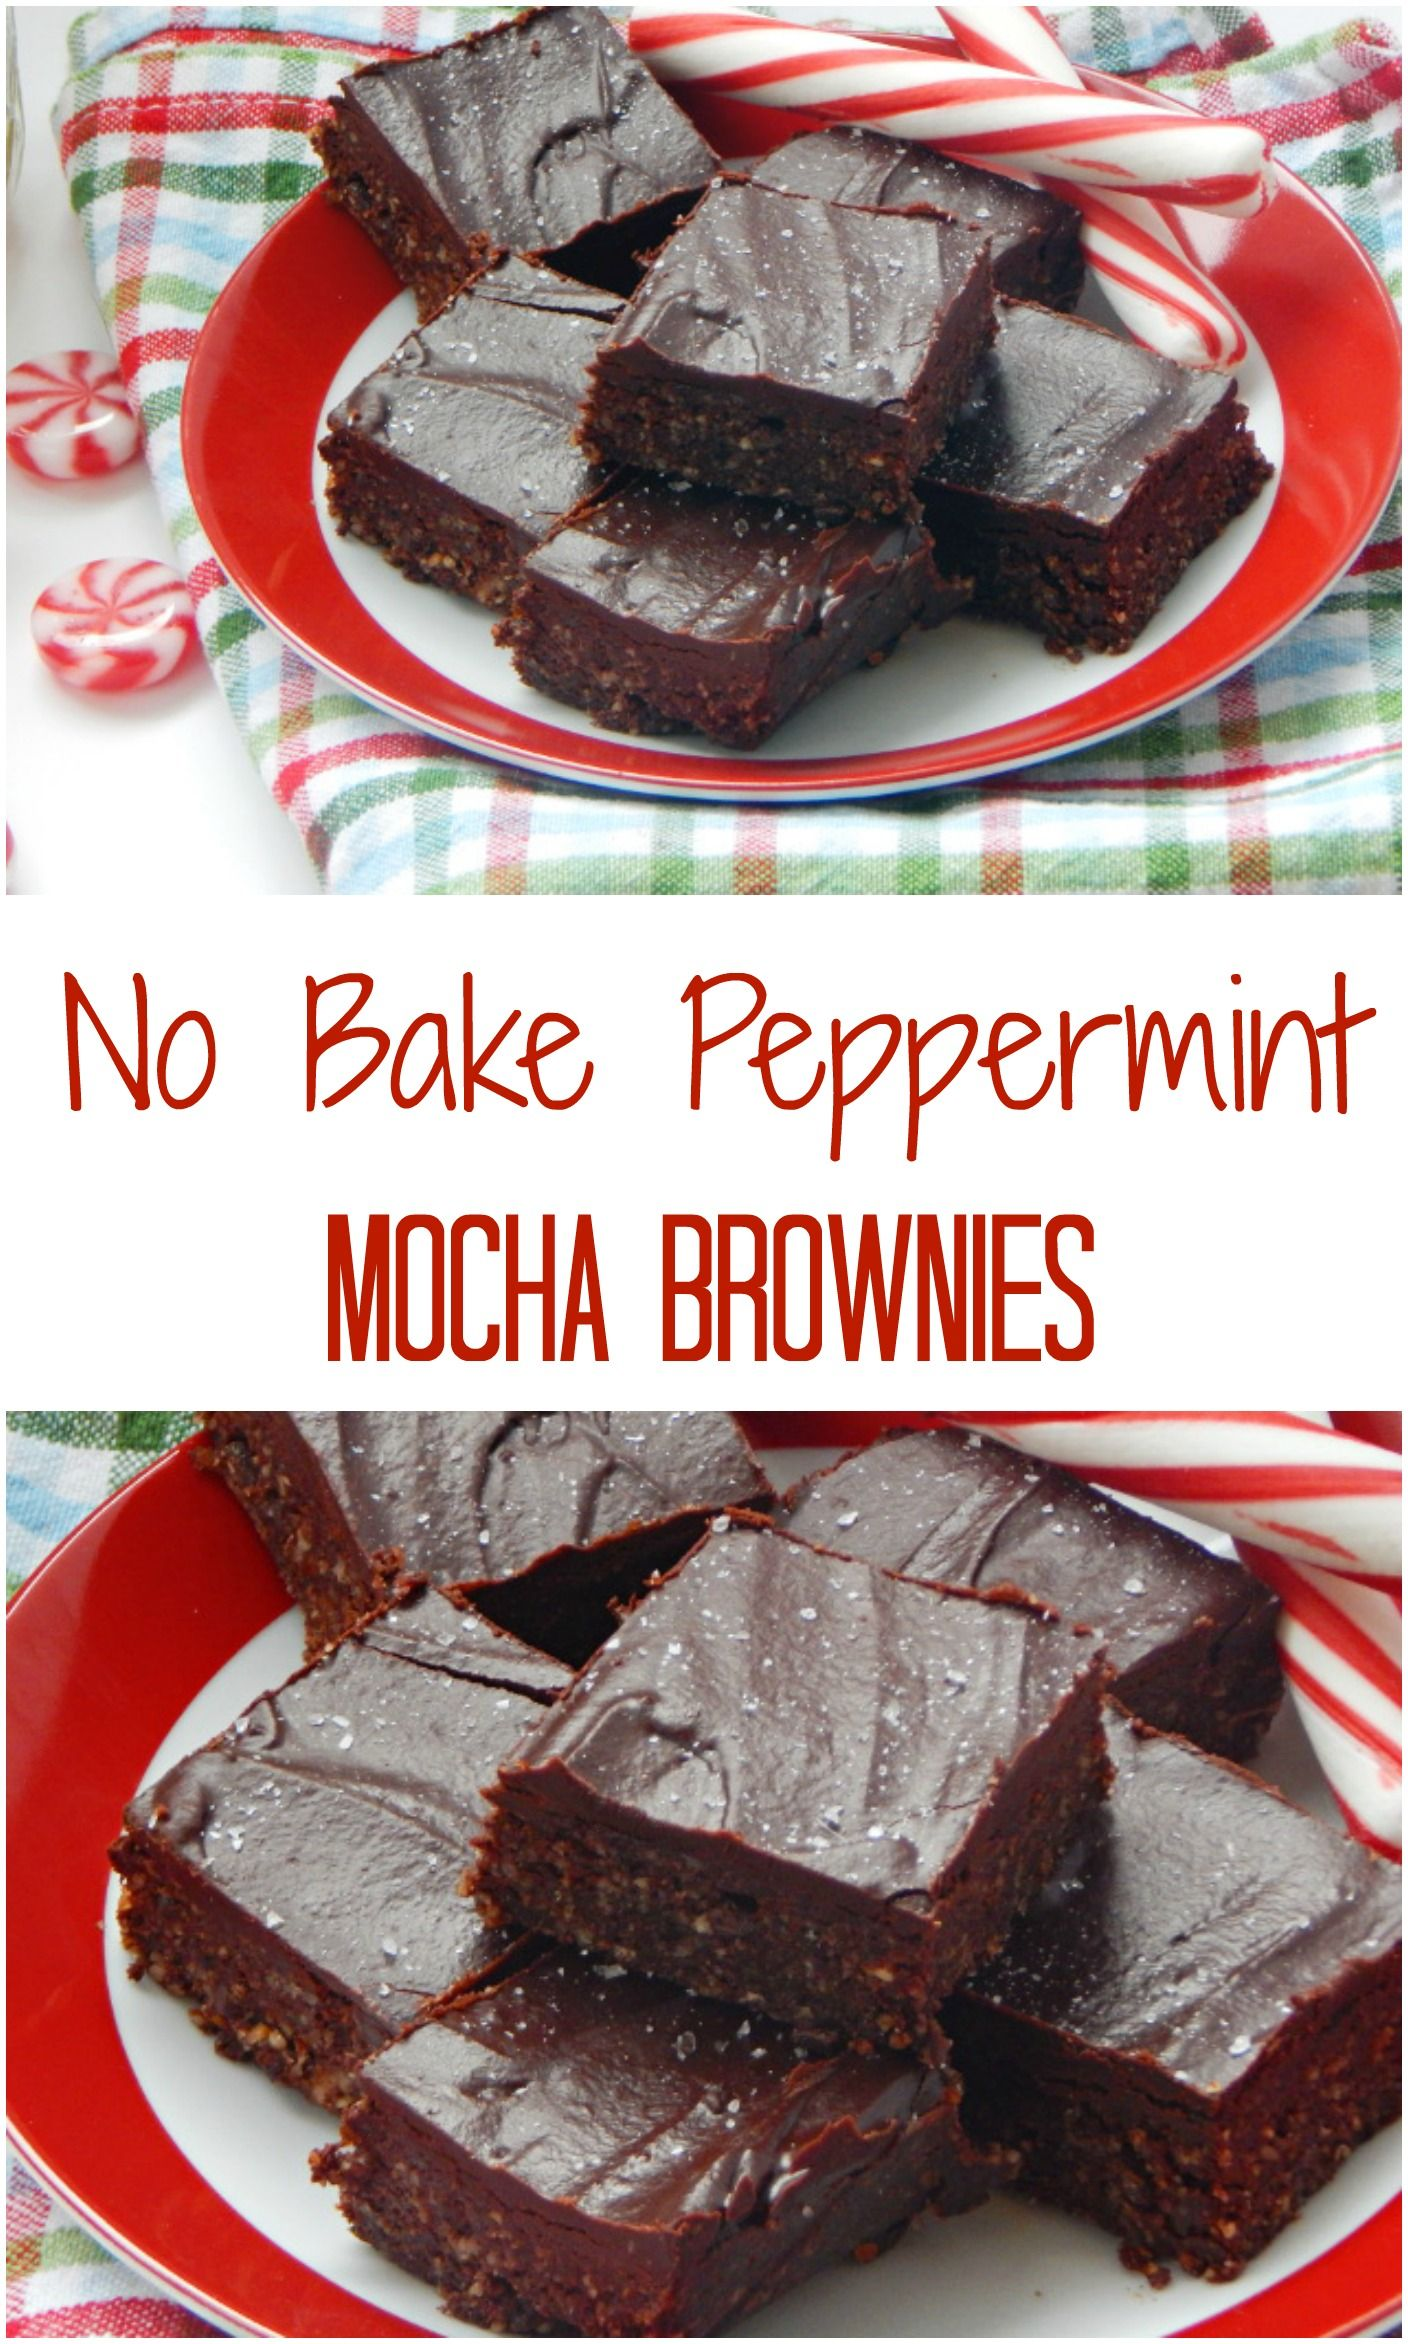 No Bake Peppermint Mocha Brownies. These brownies are so rich and fudgy but no one will know that they are actually healthy as well!